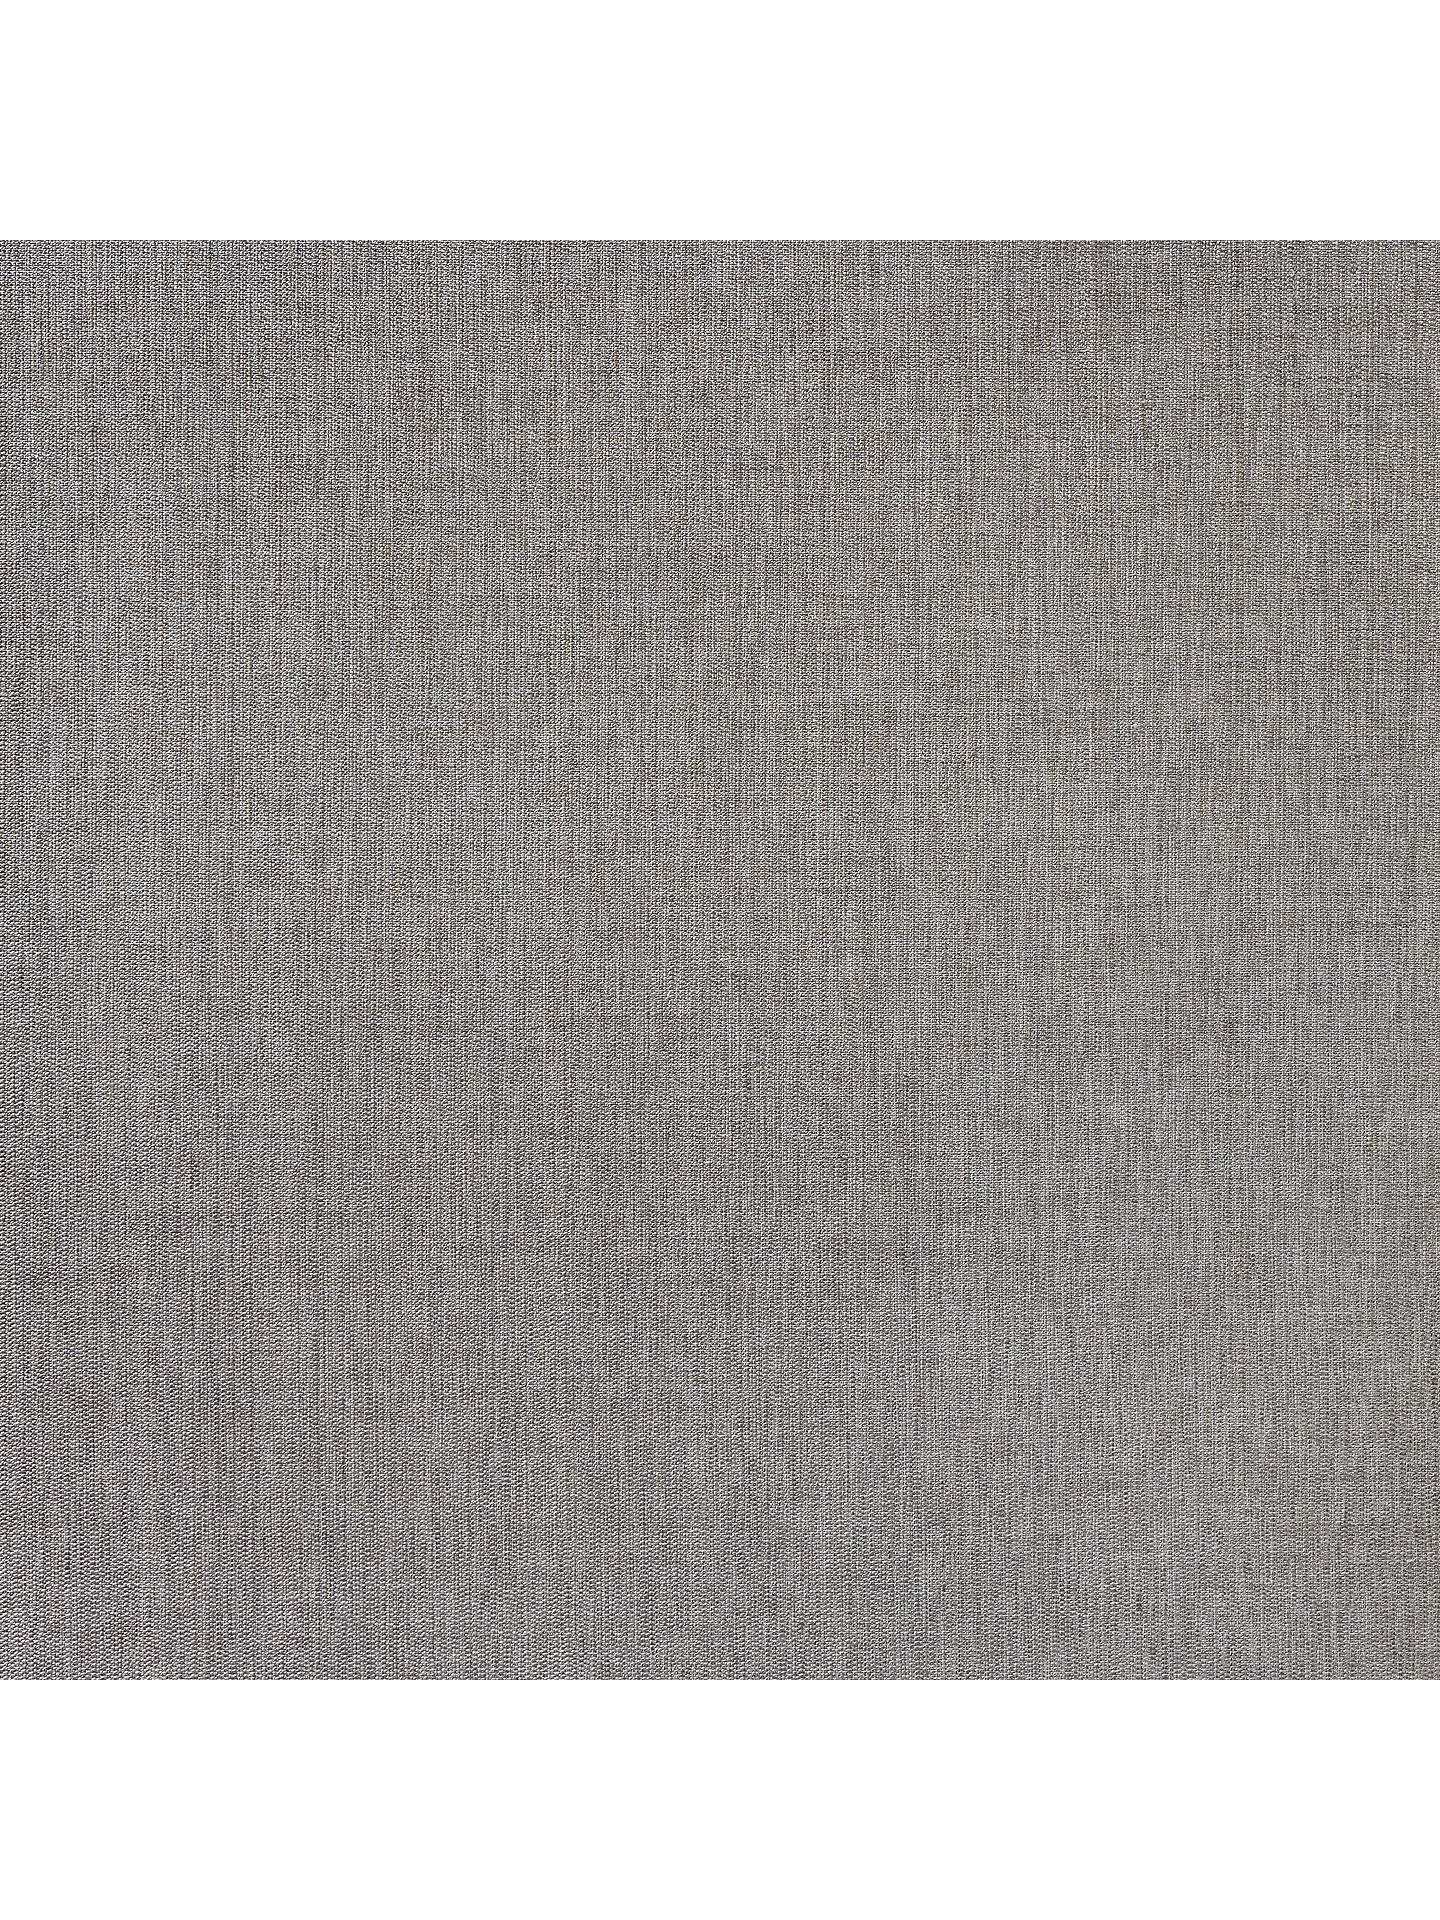 John Lewis Partners Stanton Semi Plain Fabric French Grey Price Band C Online